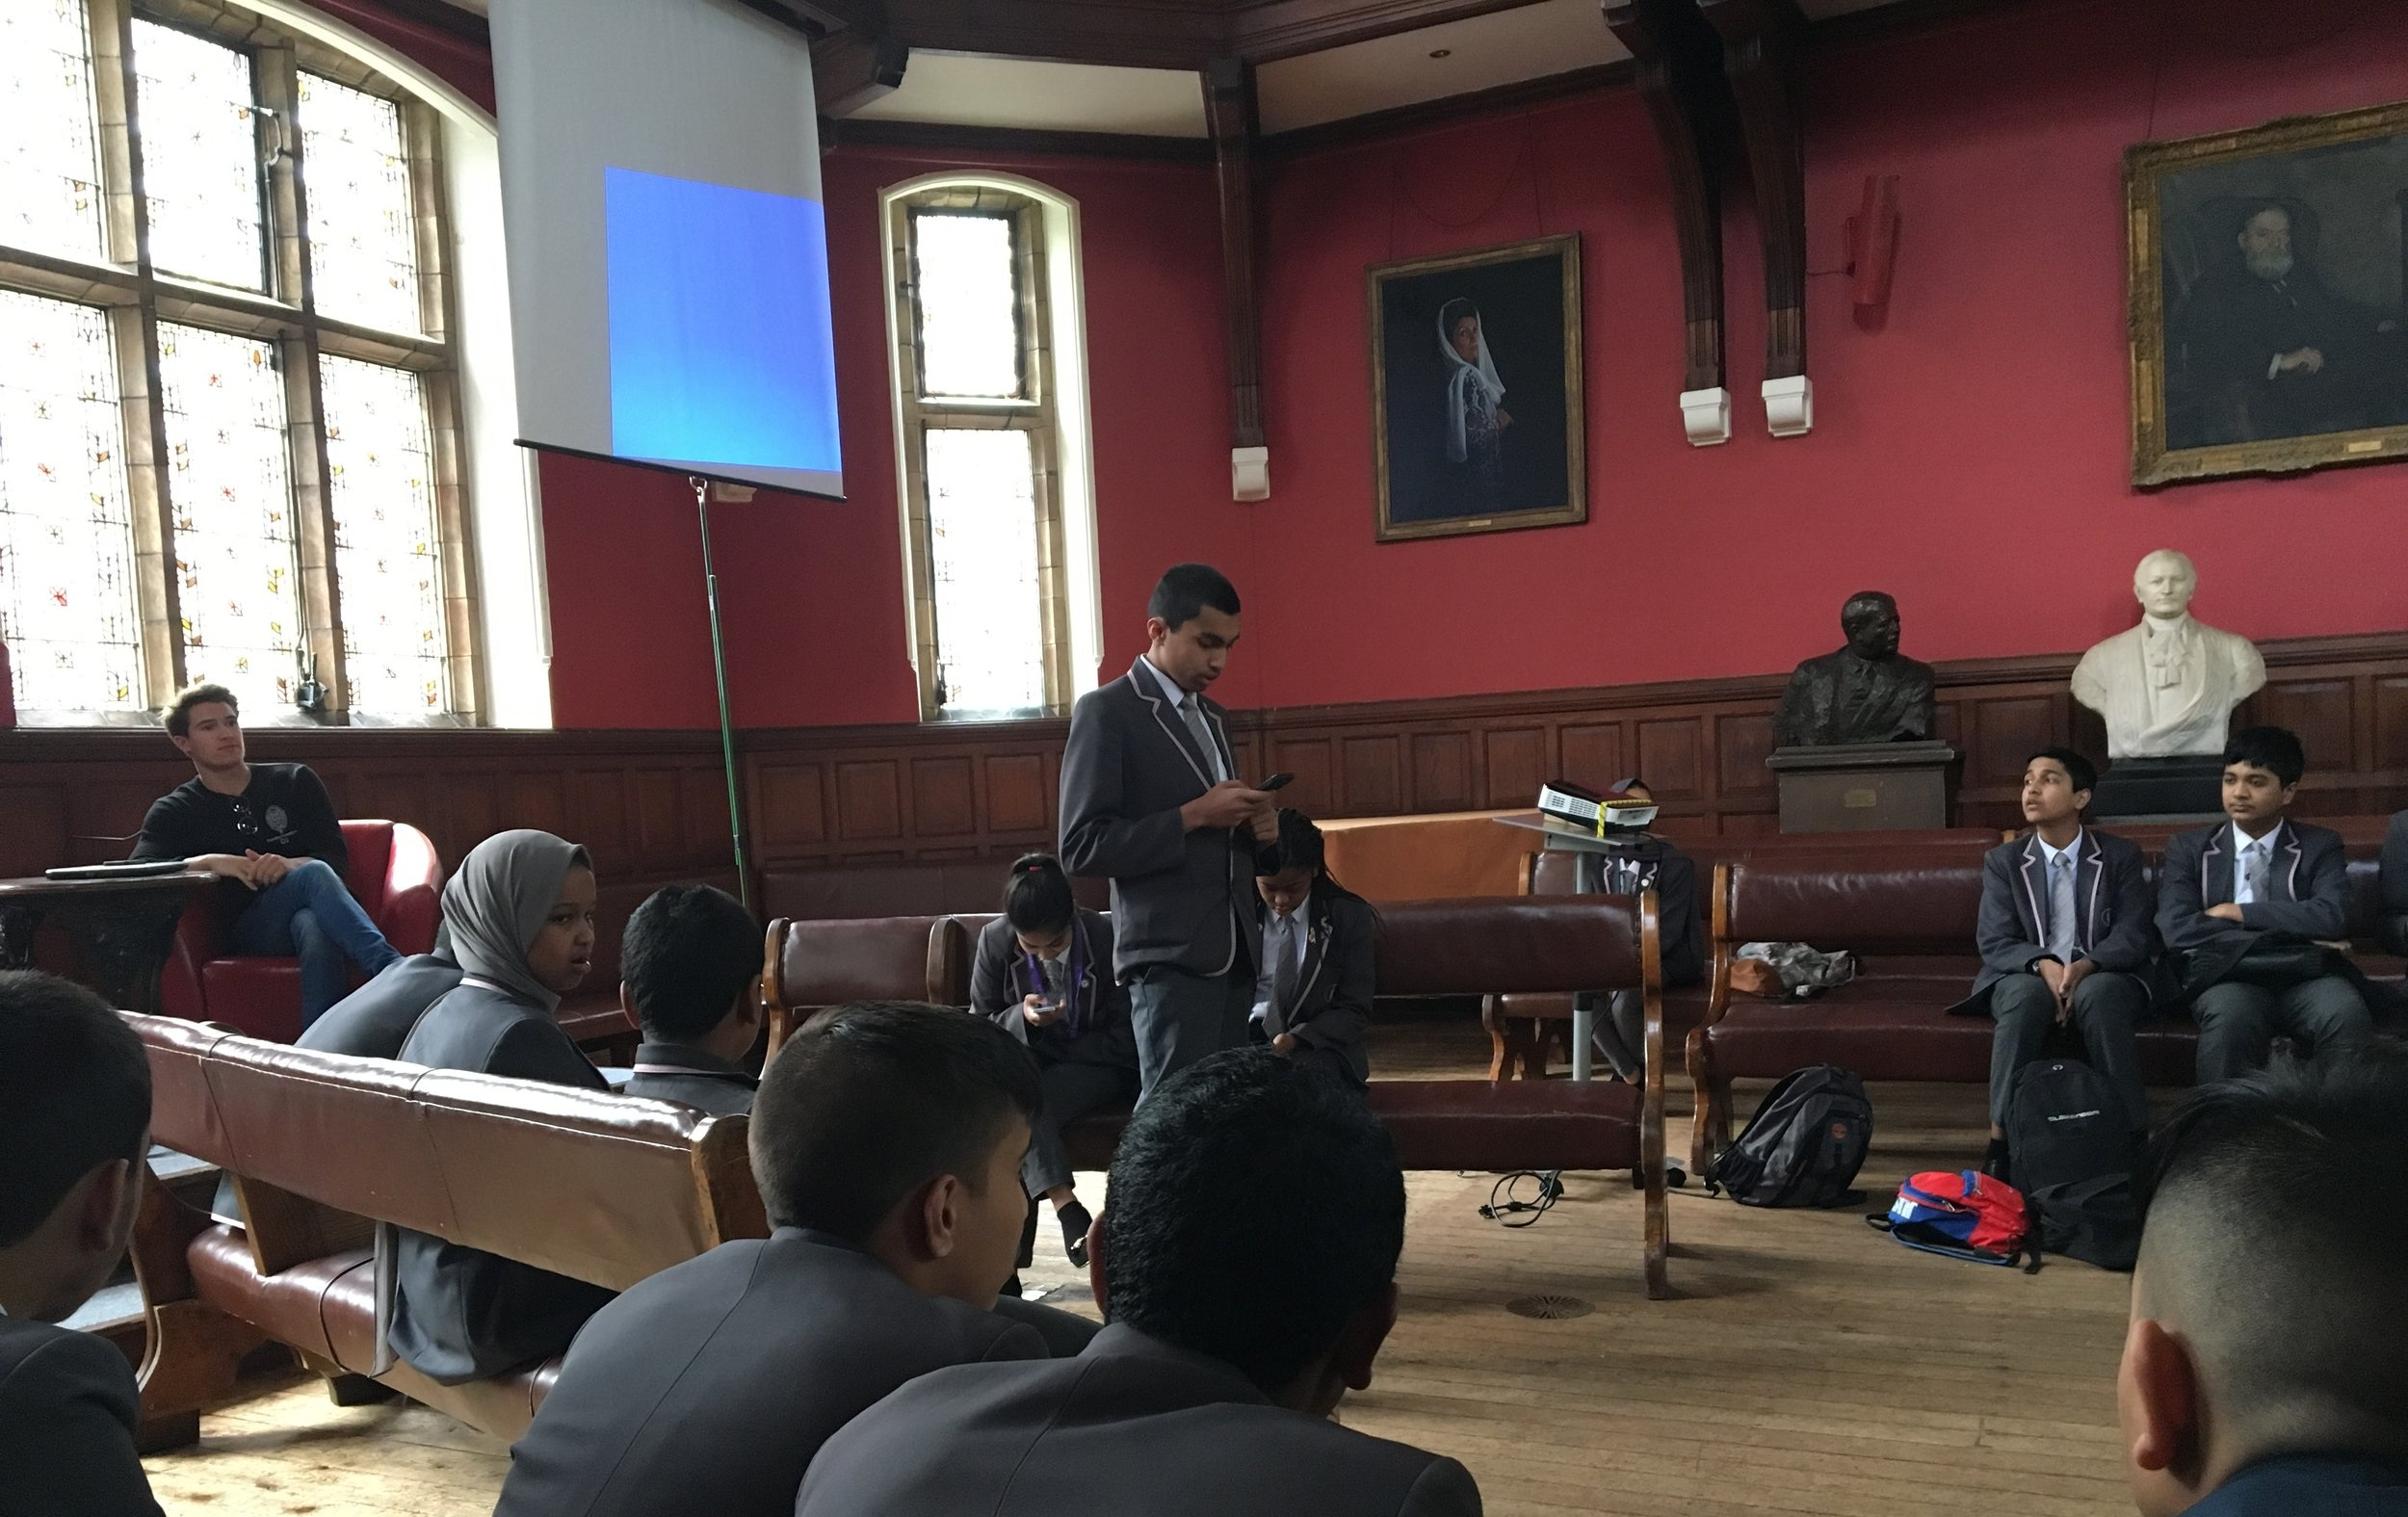 The Oxford Union - Public Speaking Training